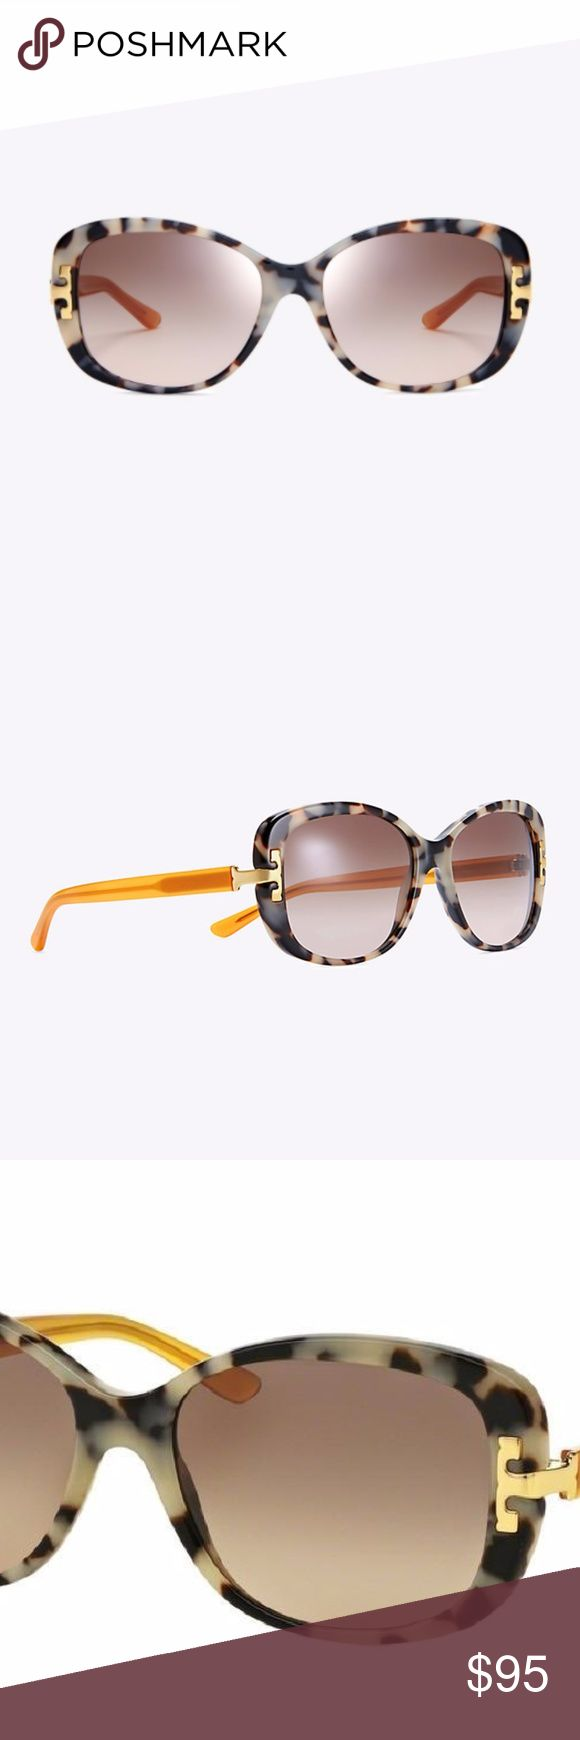 Tory Burch Serif-T Women's Sunglasses (Authentic) NWOT. Never used. Polished and feminine, the Tory Burch Serif-T Rectangle Sunglasses are made of acetate, with a tortoise front and a contrasting solid temple. Featuring gradient lenses, the flattering frame has a metal logo at the hinges for a signature finish. Includes a protective orange case made from high quality, scratch-resistant leather.  Brand: Tory Burch Style: Serif-T Rectangle Sunglasses Colors: Black/White Tortoise and Marigold…